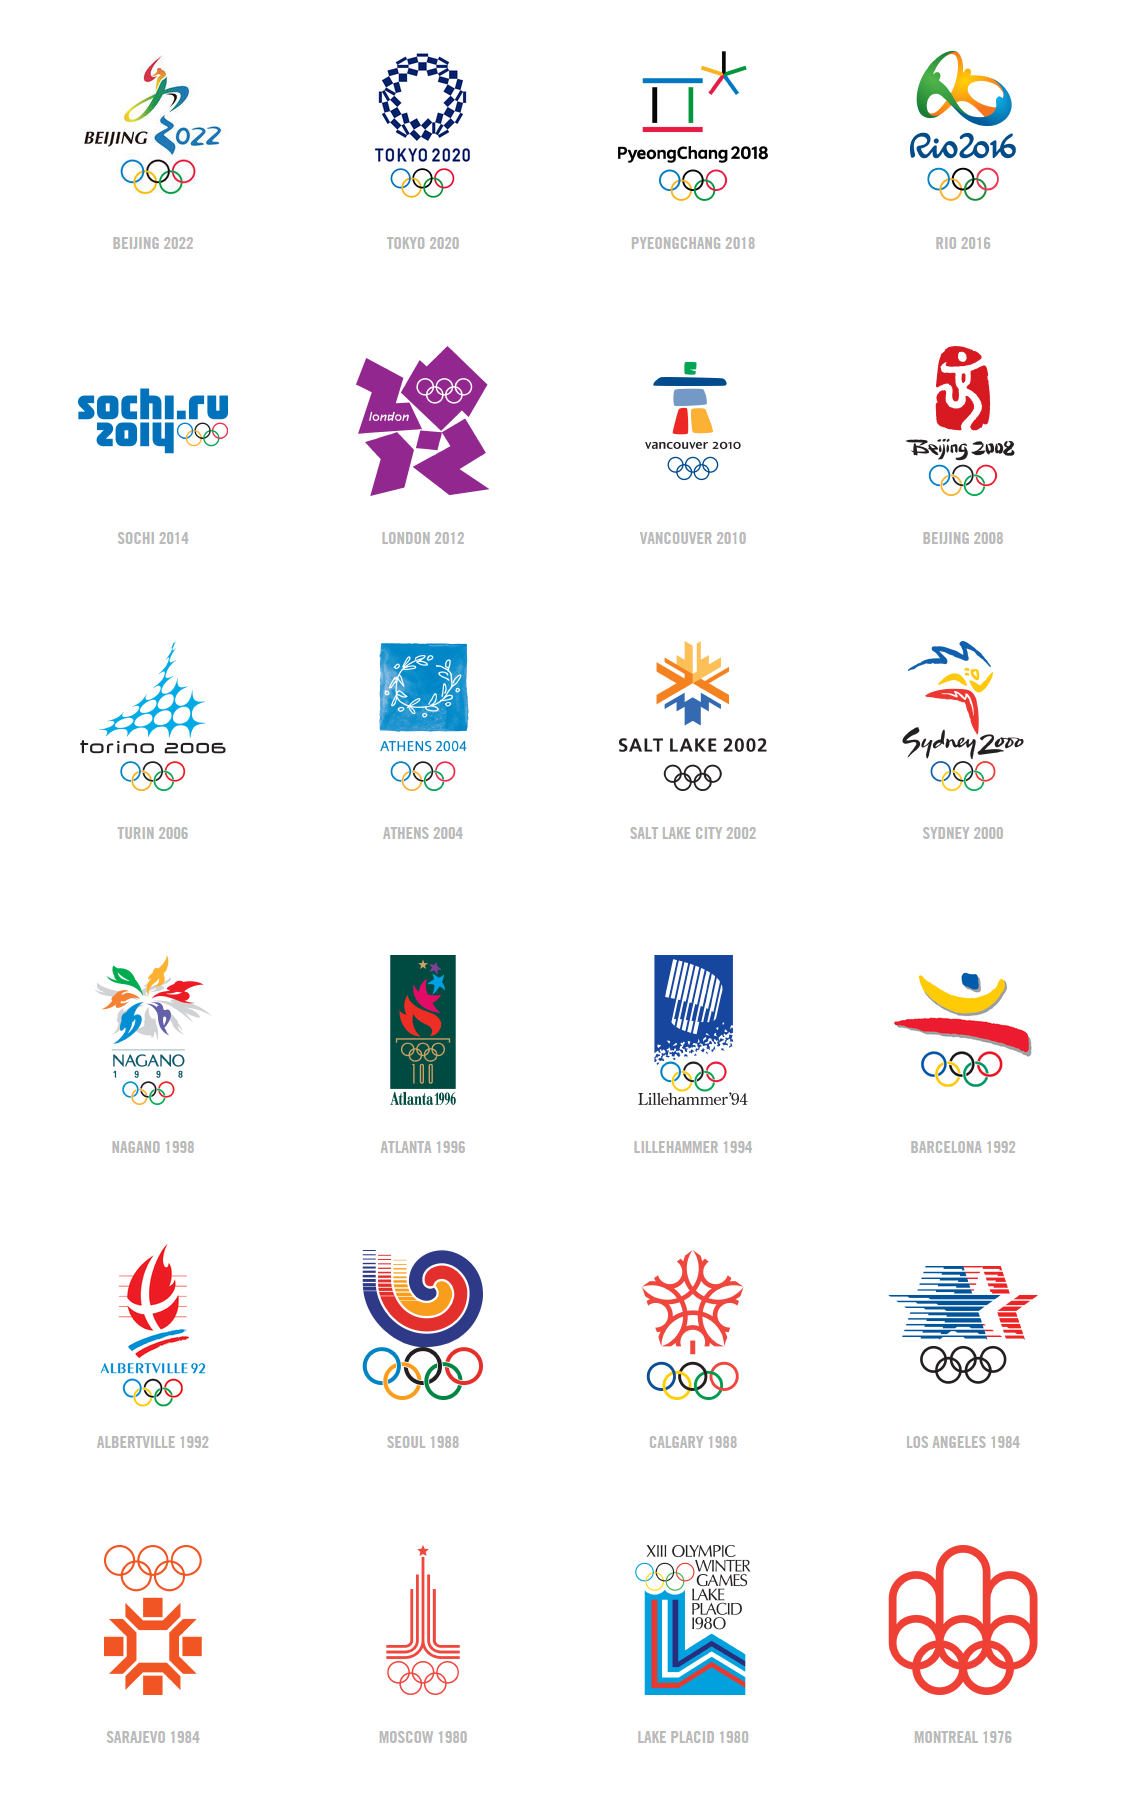 Which Olympic Games logo(s) 1976-2022 do you like best?